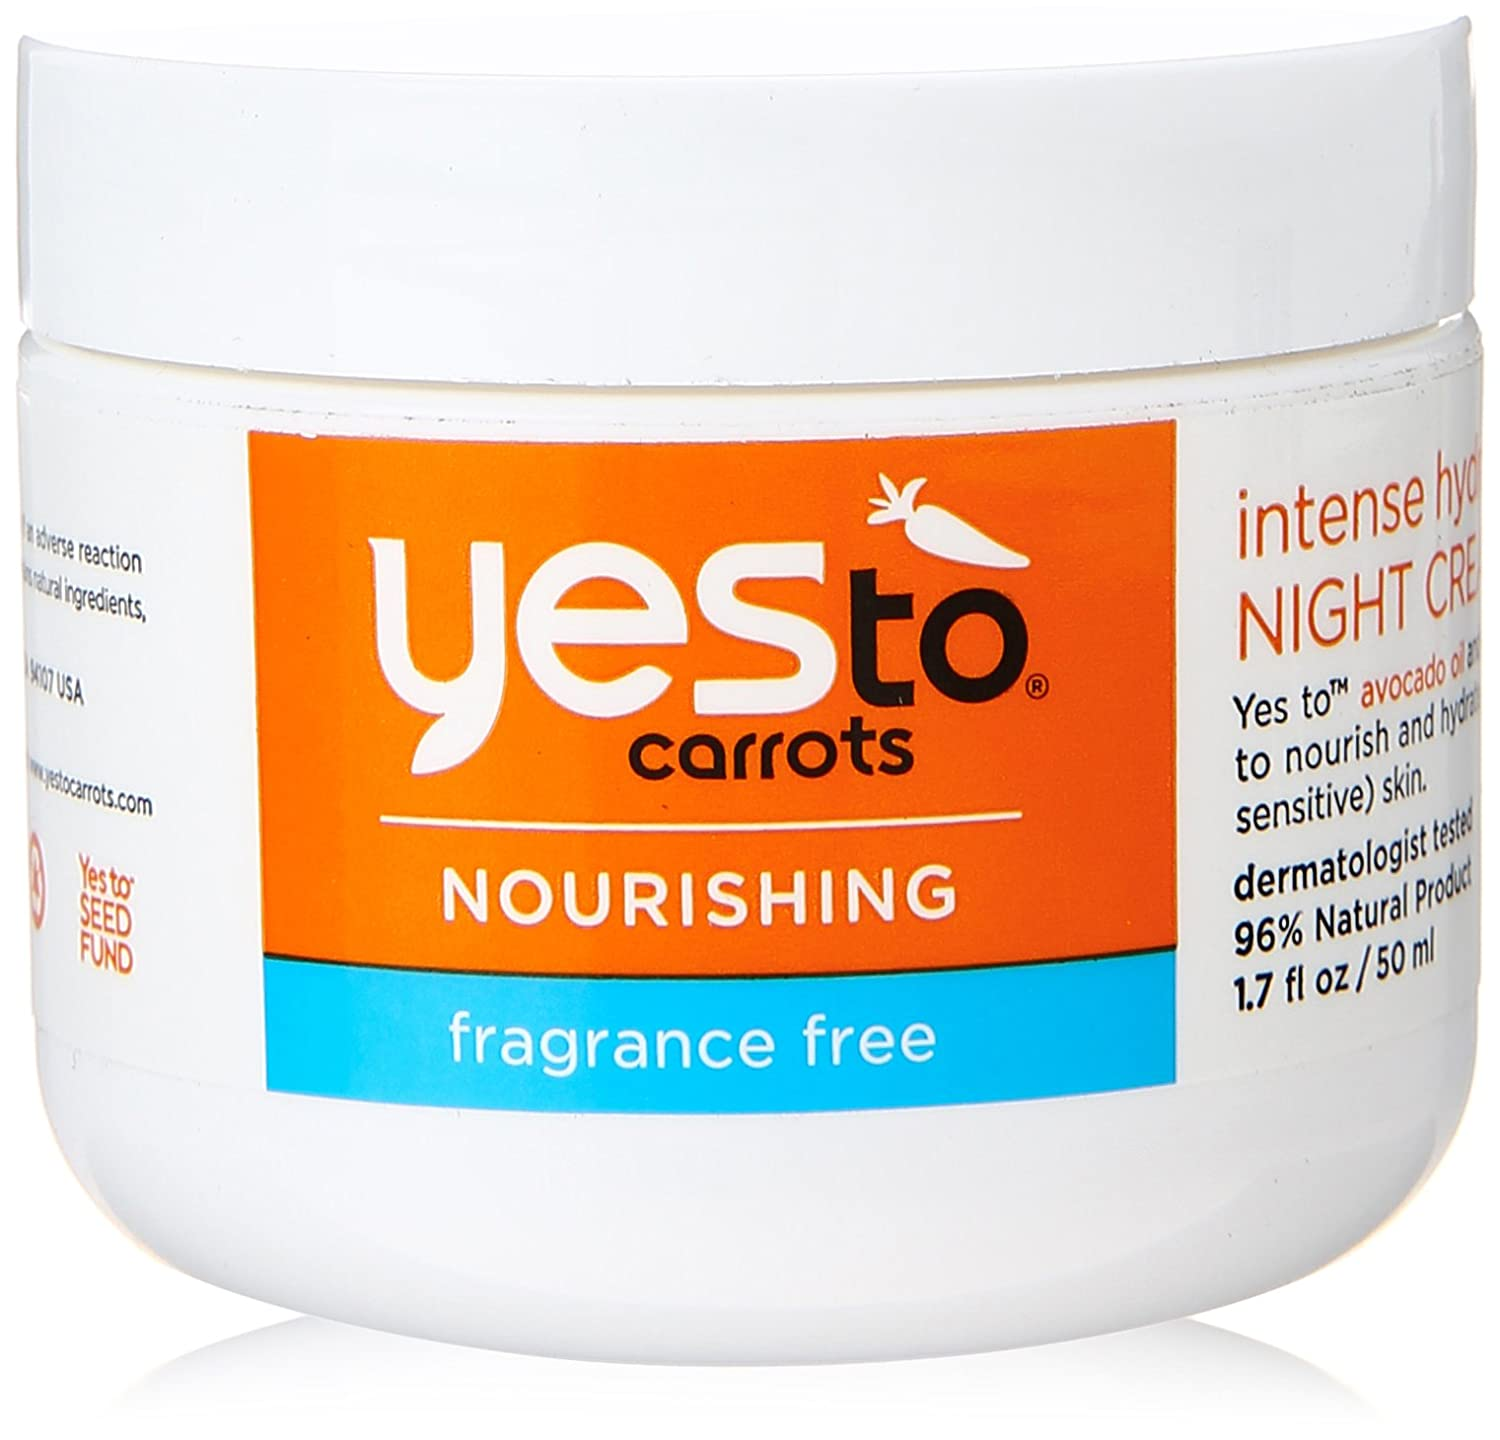 Yes To Carrots Fragrance-Free Intense Hydration Night Cream, 1.7 Fluid Ounce